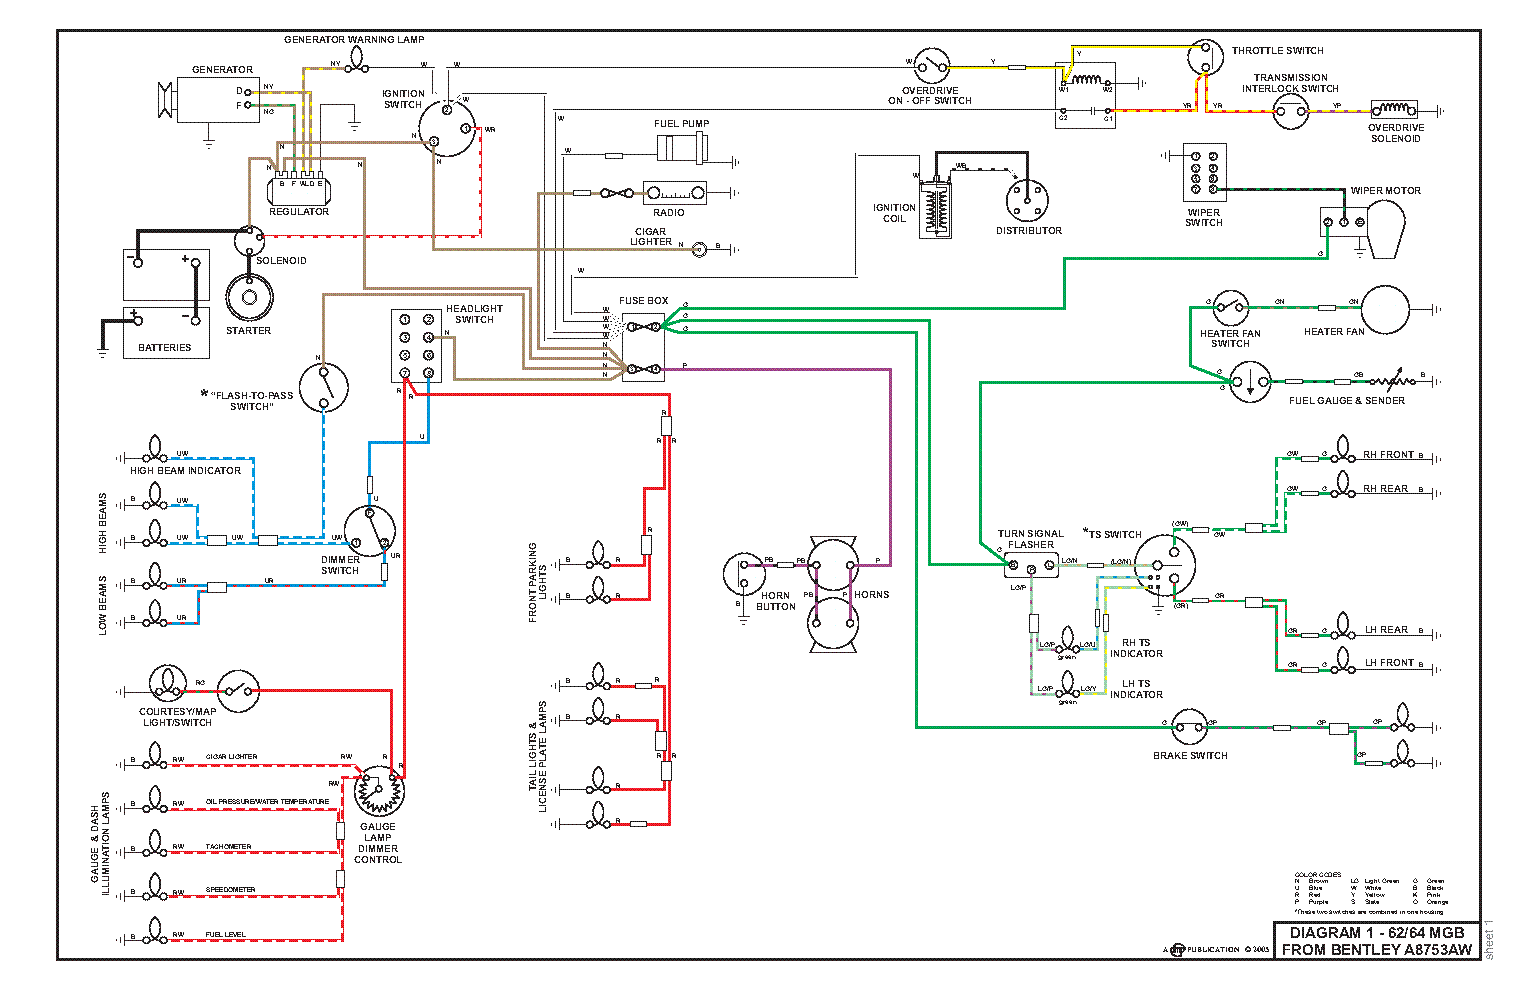 Electric Circuit Diagram Design Basic Free Download Wiring Diagram ...